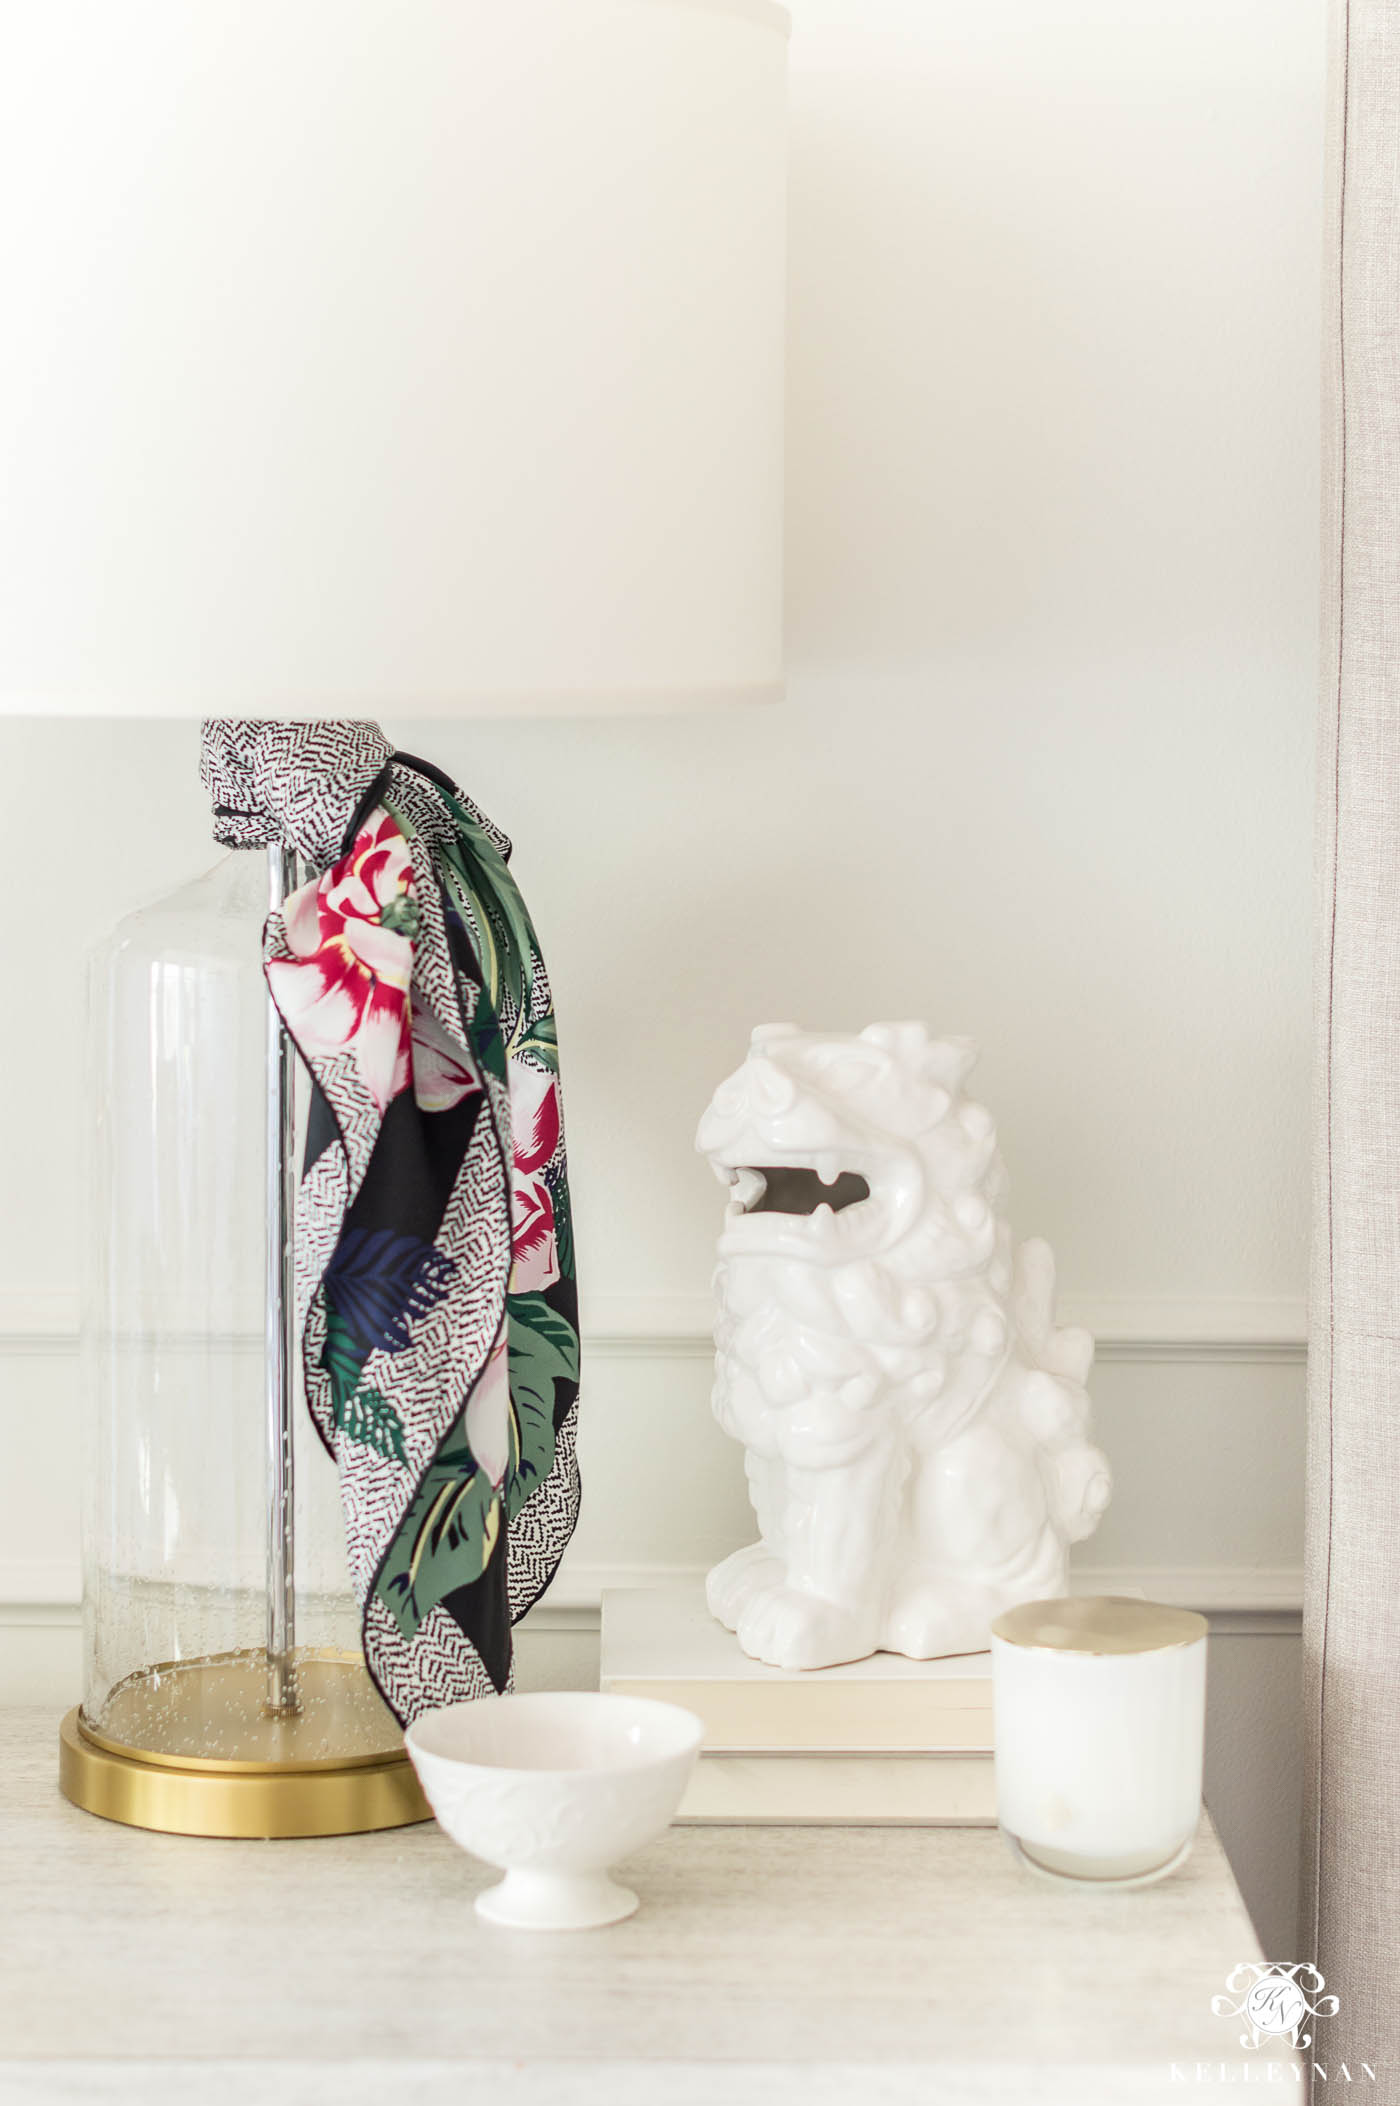 Scarves as lamp accessories in the bedroom